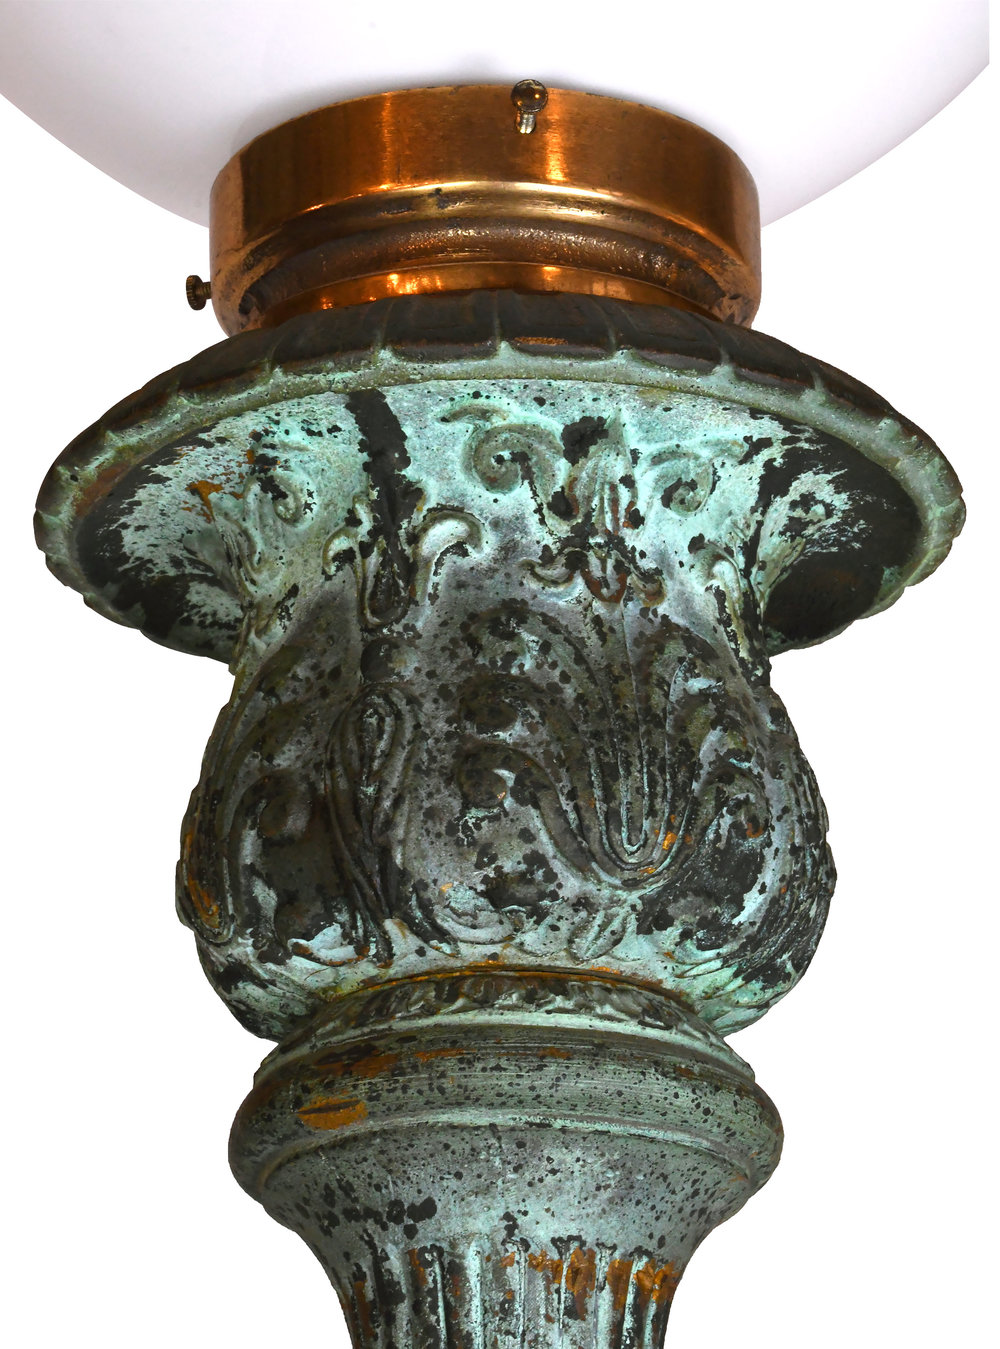 47586-bronze-street-light-bulb-detail-1-edit.jpg